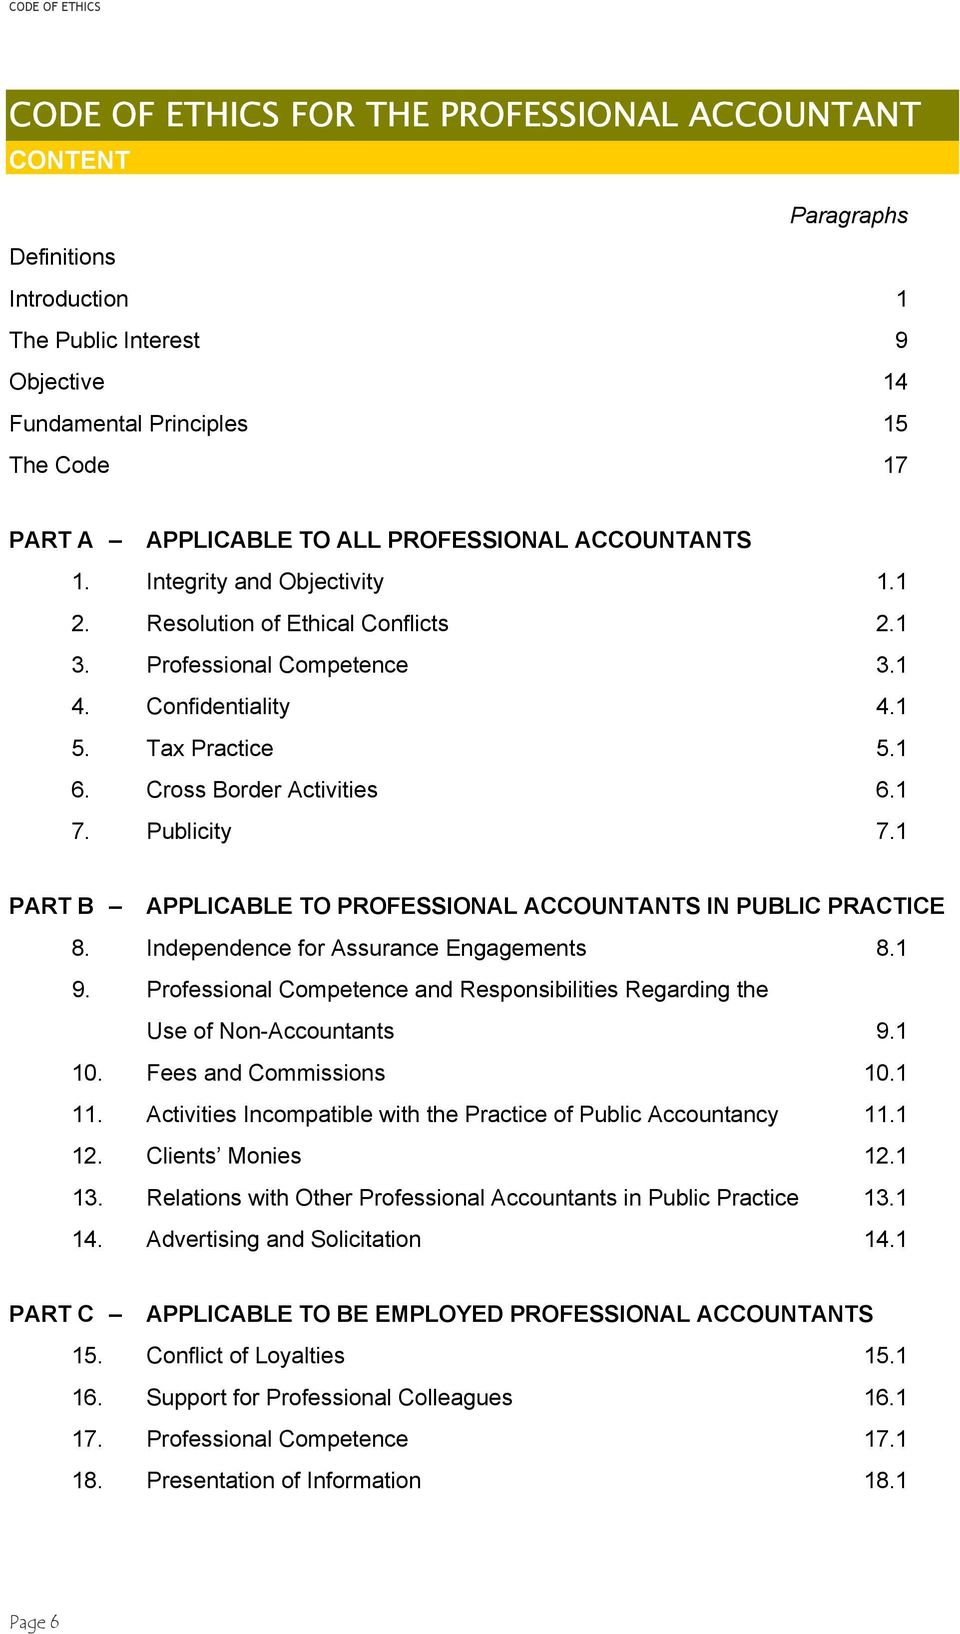 1 7. Publicity 7.1 PART B APPLICABLE TO PROFESSIONAL ACCOUNTANTS IN PUBLIC PRACTICE 8. Independence for Assurance Engagements 8.1 9.